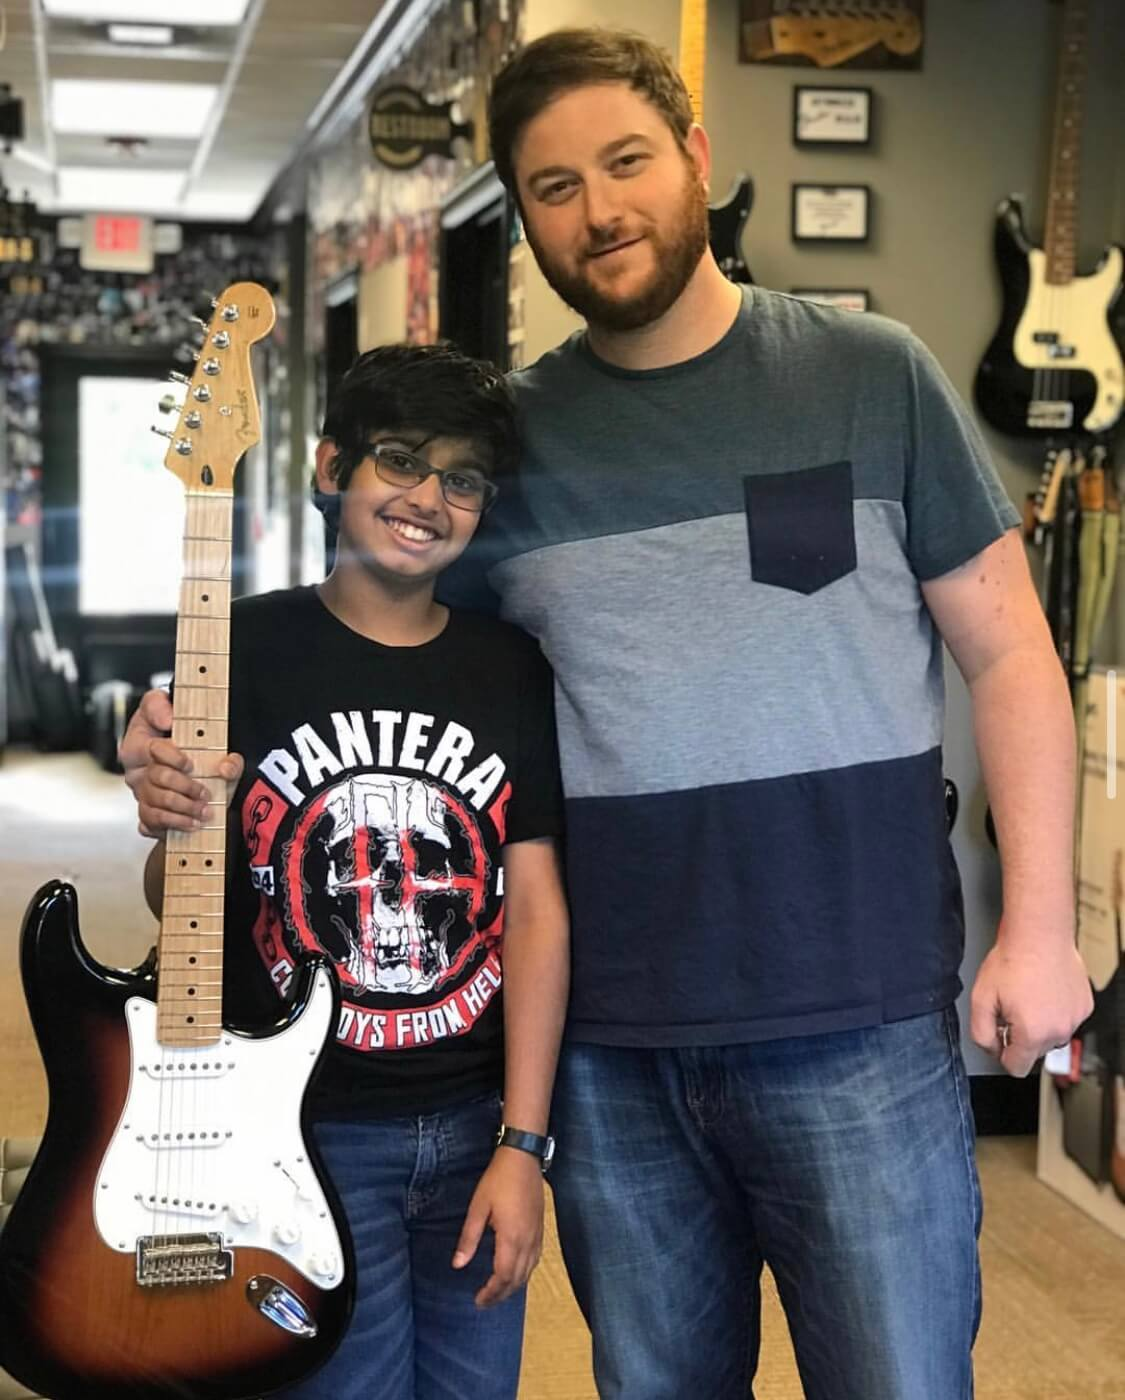 Adam and a student show off his sweet new Fender guitar.